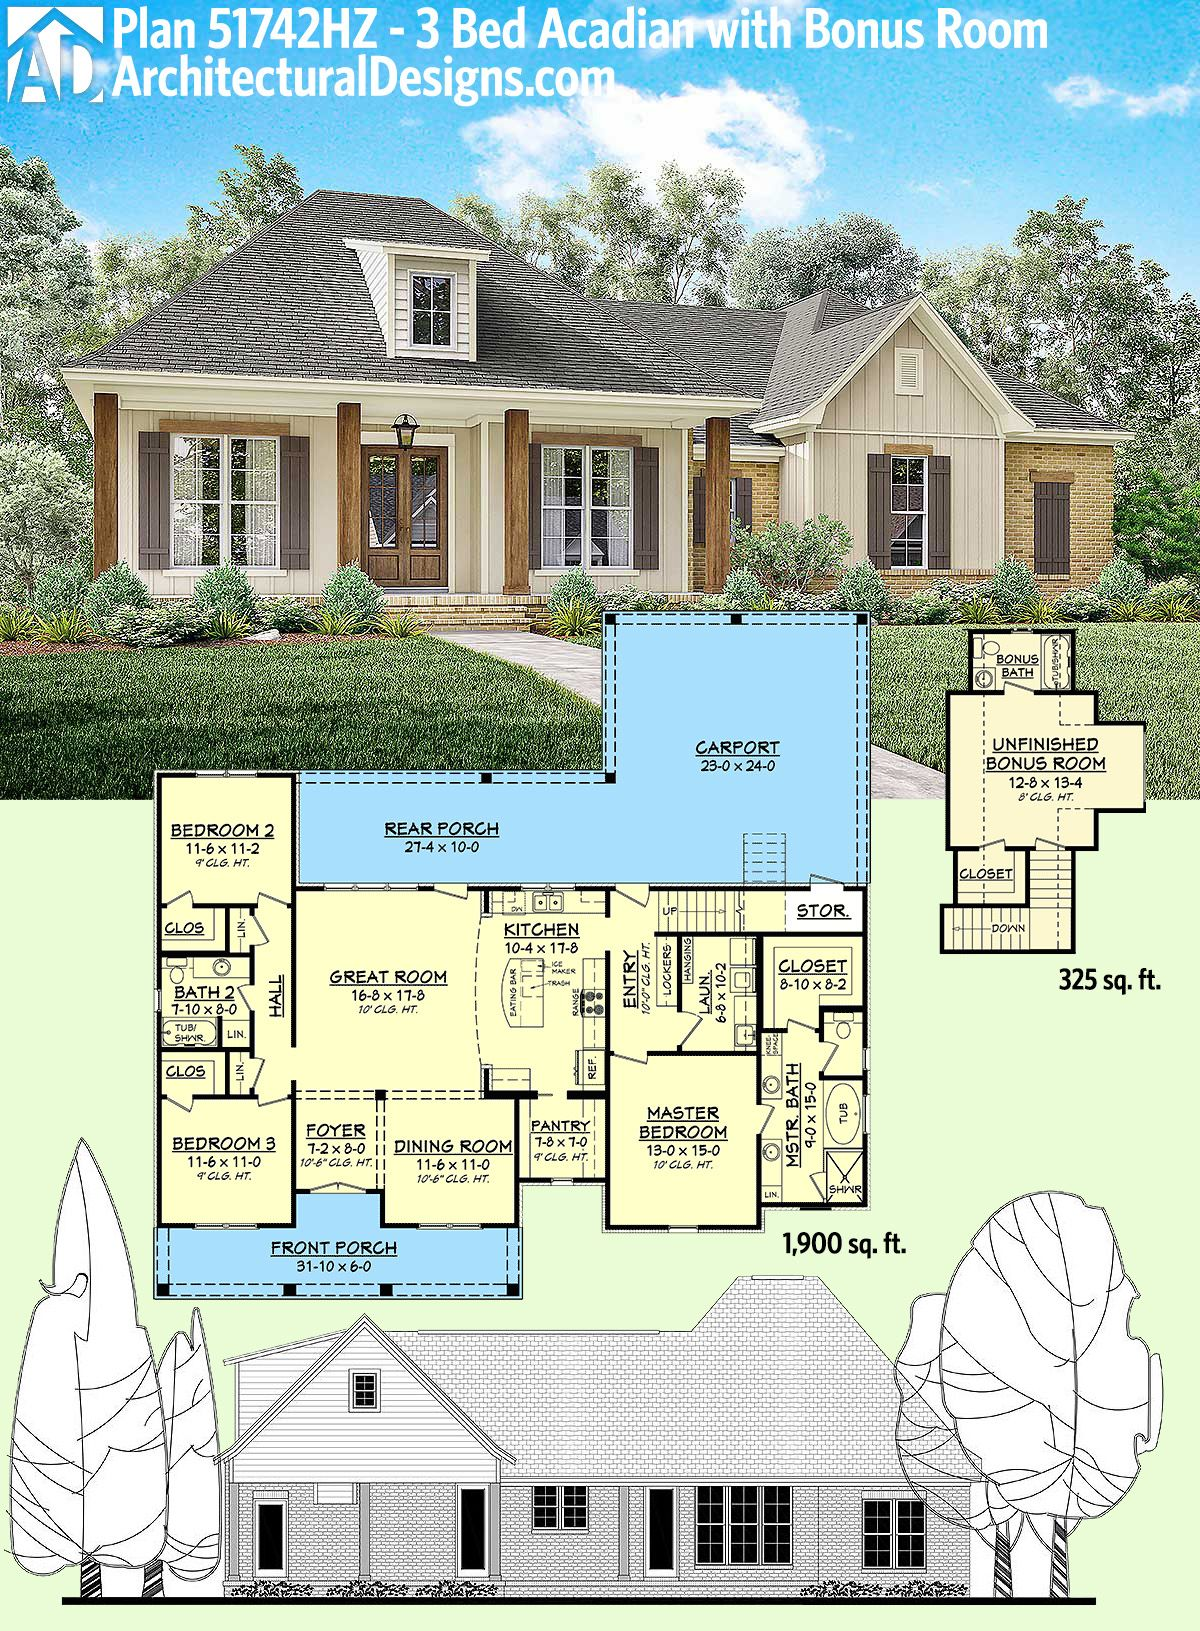 17 best ideas about acadian house plans on pinterest | house plans